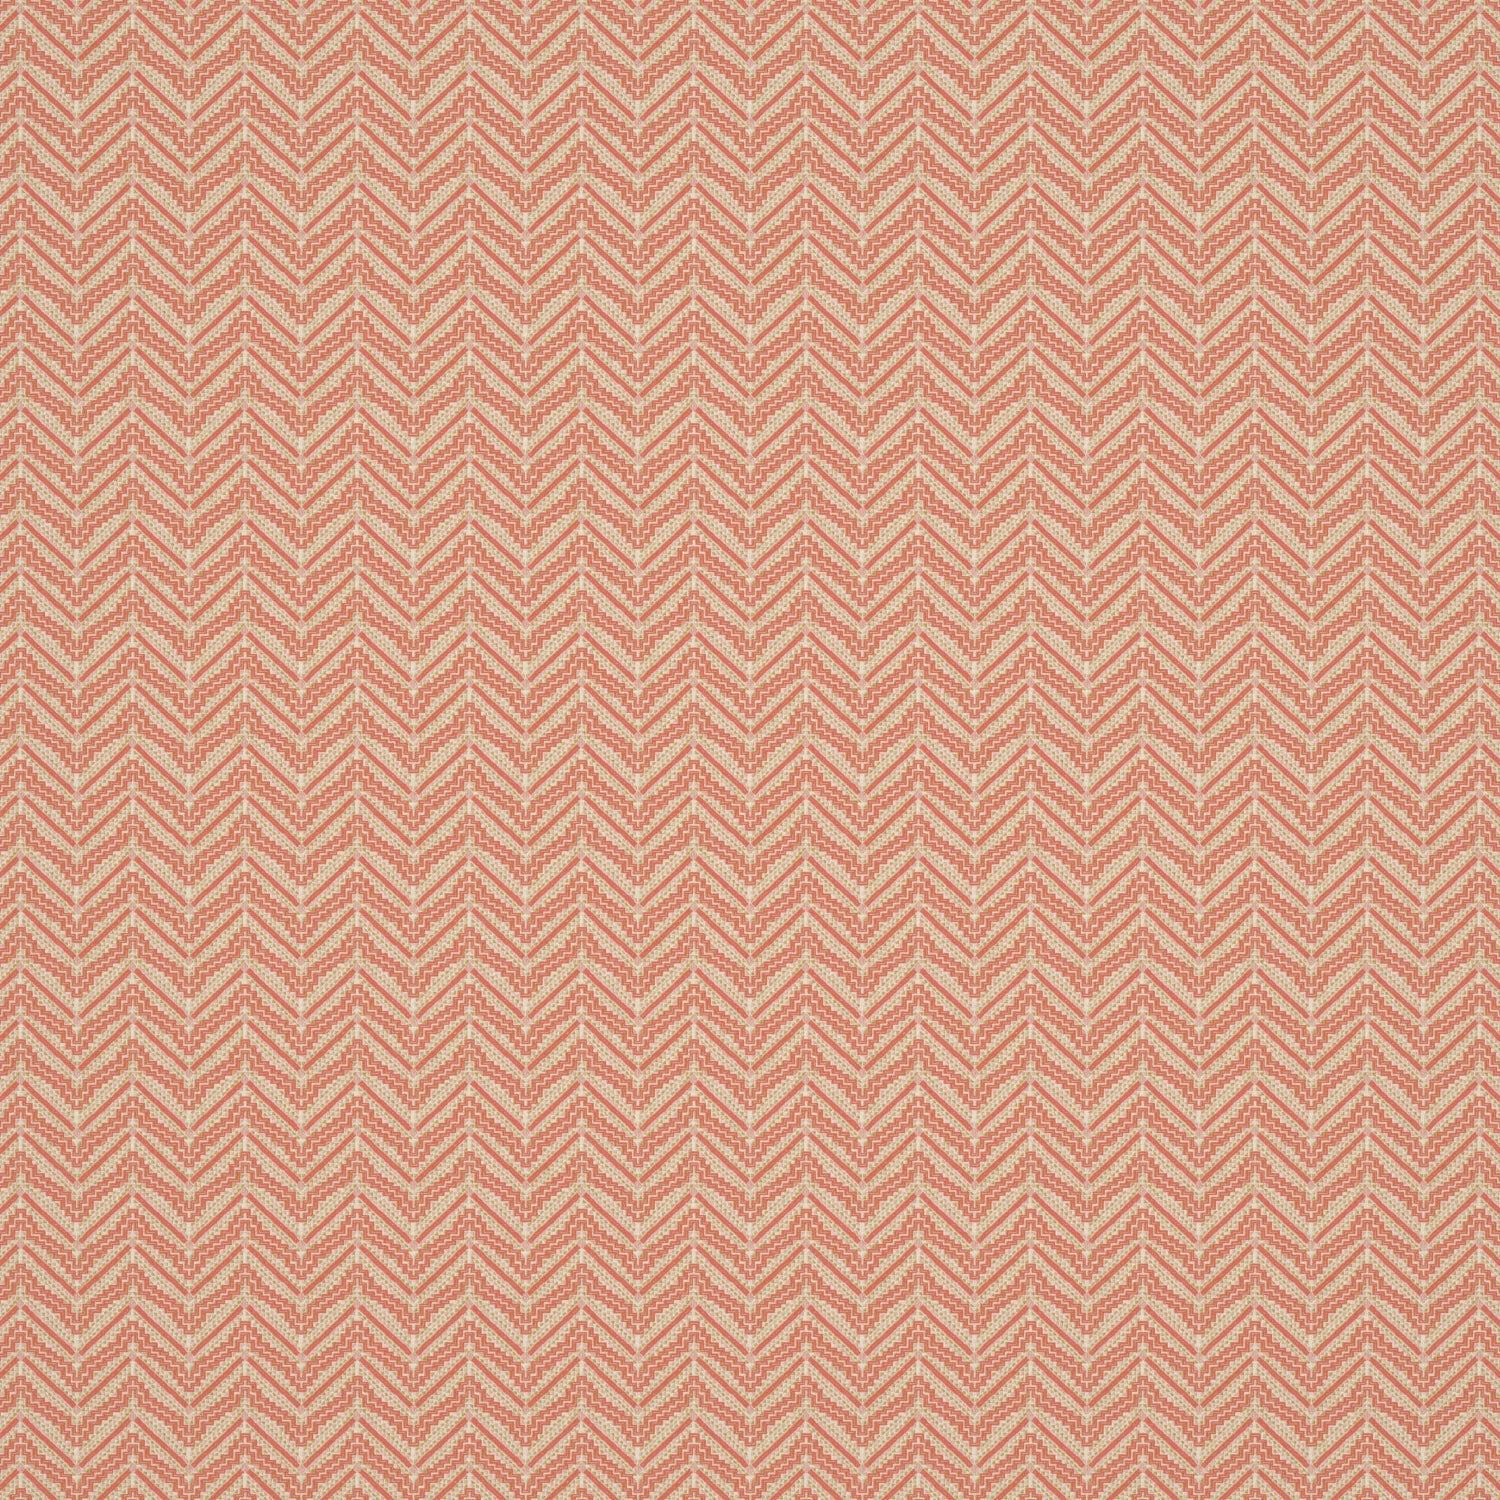 Fabric swatch of a peach coloured zig zag geometric weave fabric suitable for curtains and upholstery